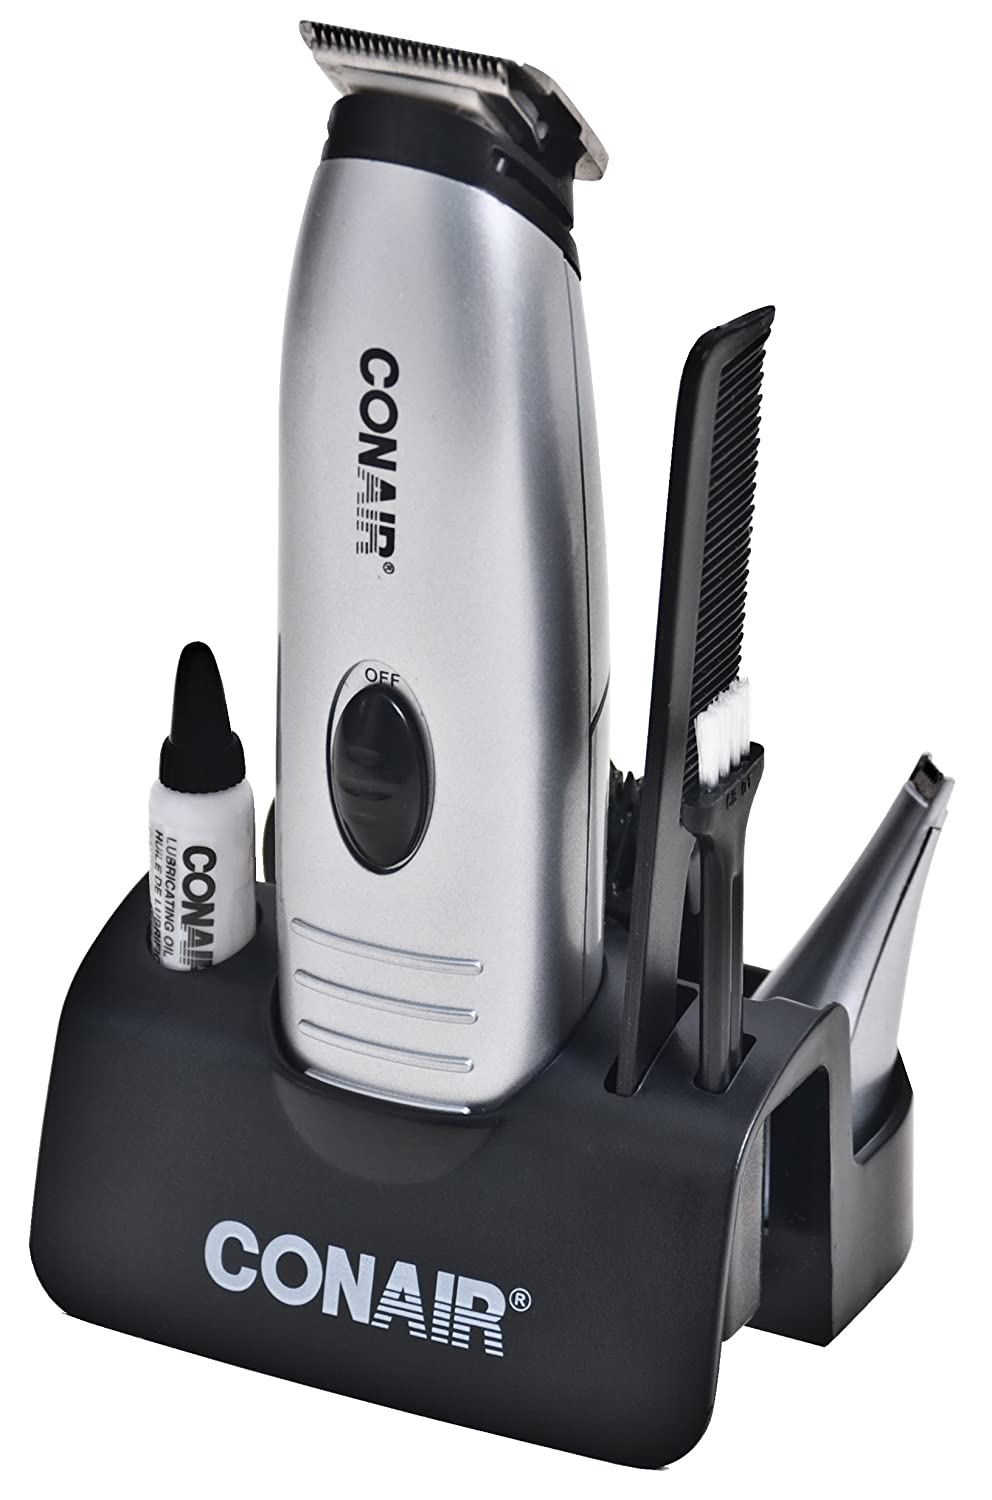 Conair for Men GMT170AC Battery Operated Beard and Moustache Trimmer with Bonus Nose/Ear Trimmer